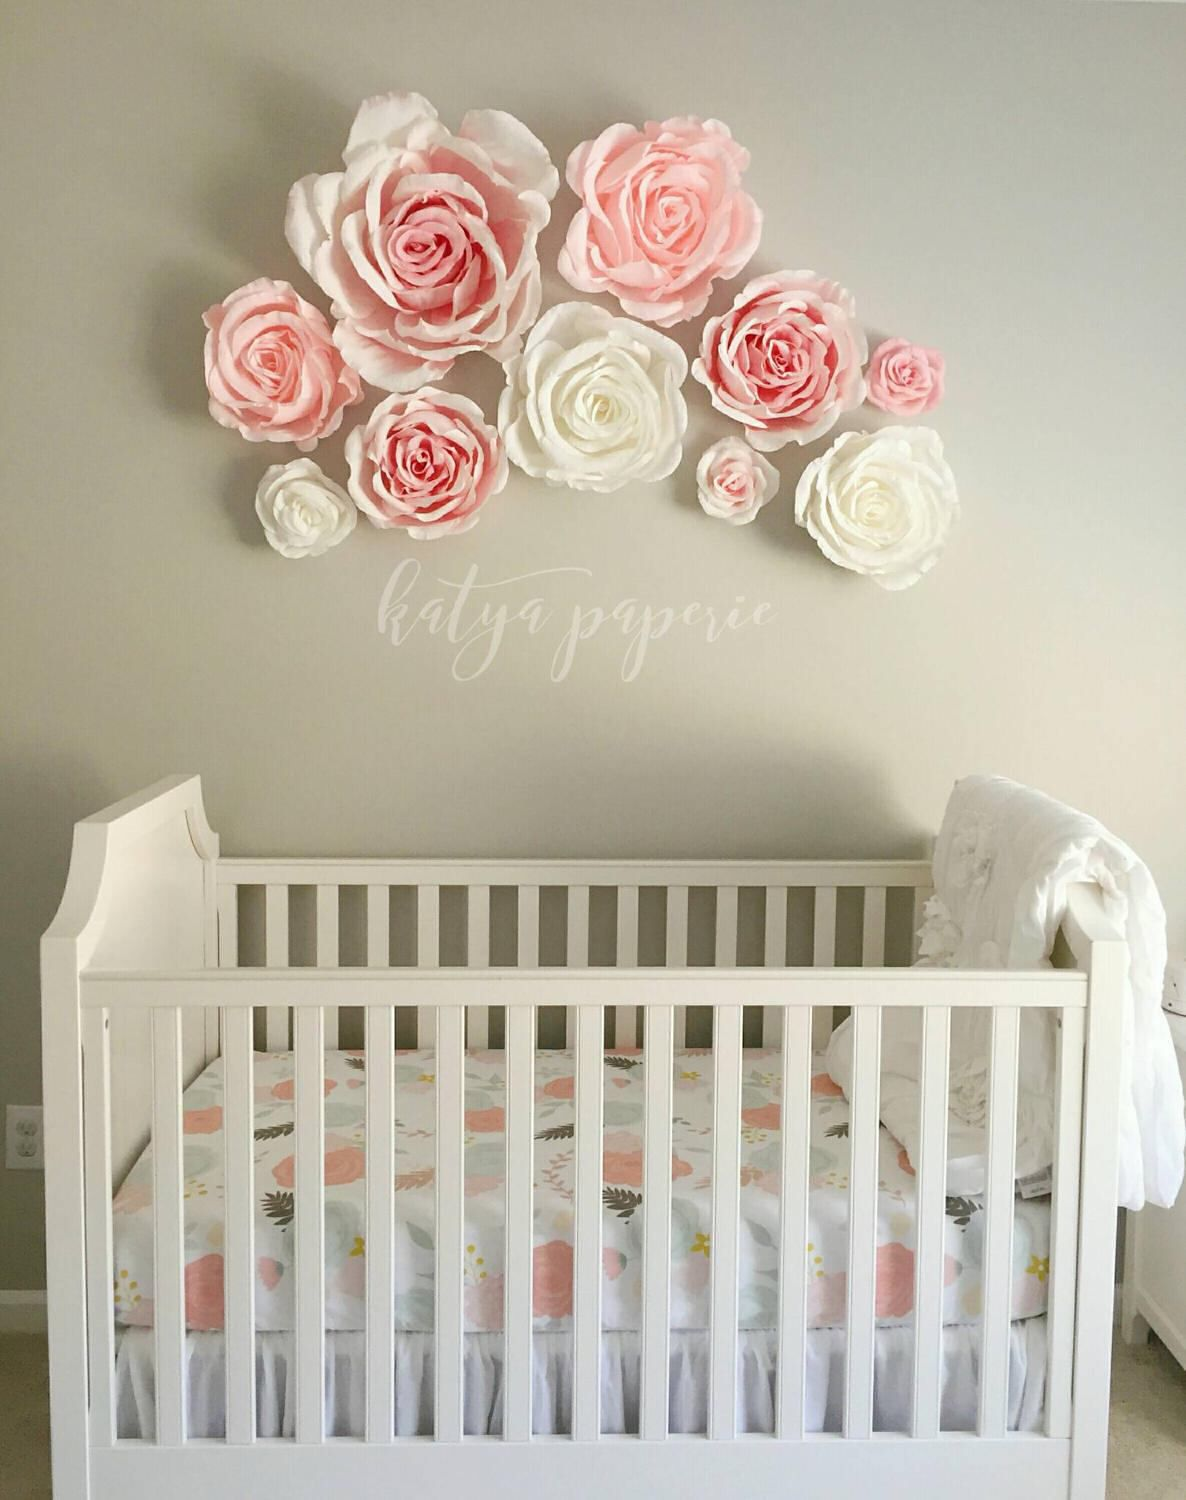 Pin By Chasey Branch On Girls Room Nursery Wallpaper